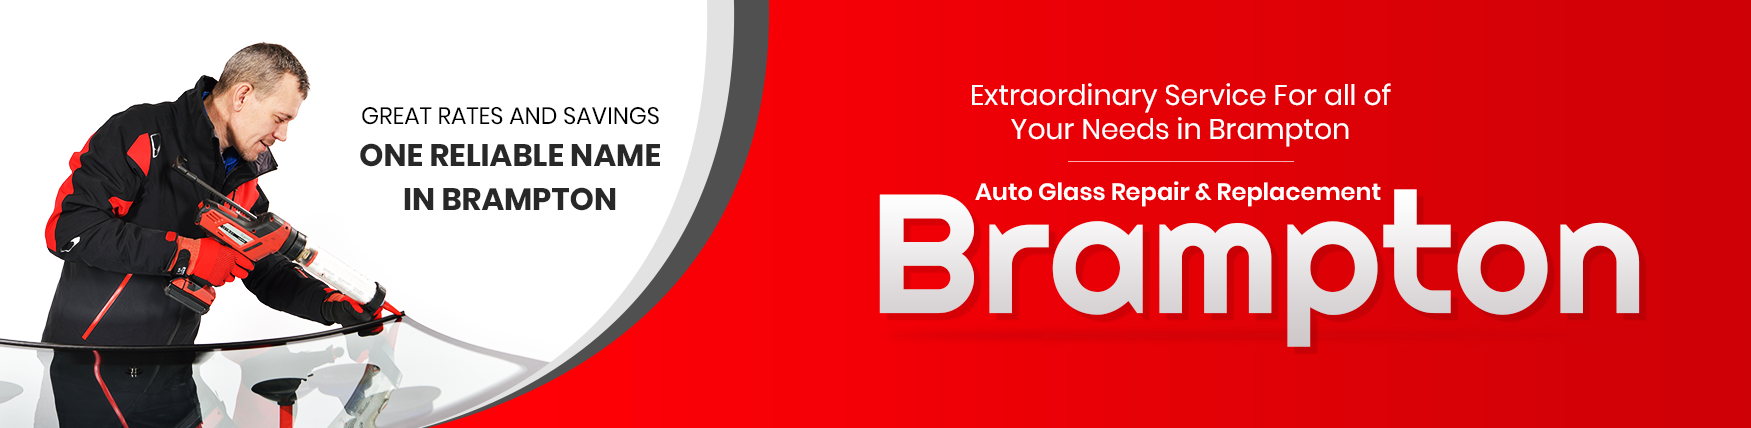 Auto Glass Repair Replacement Brampton